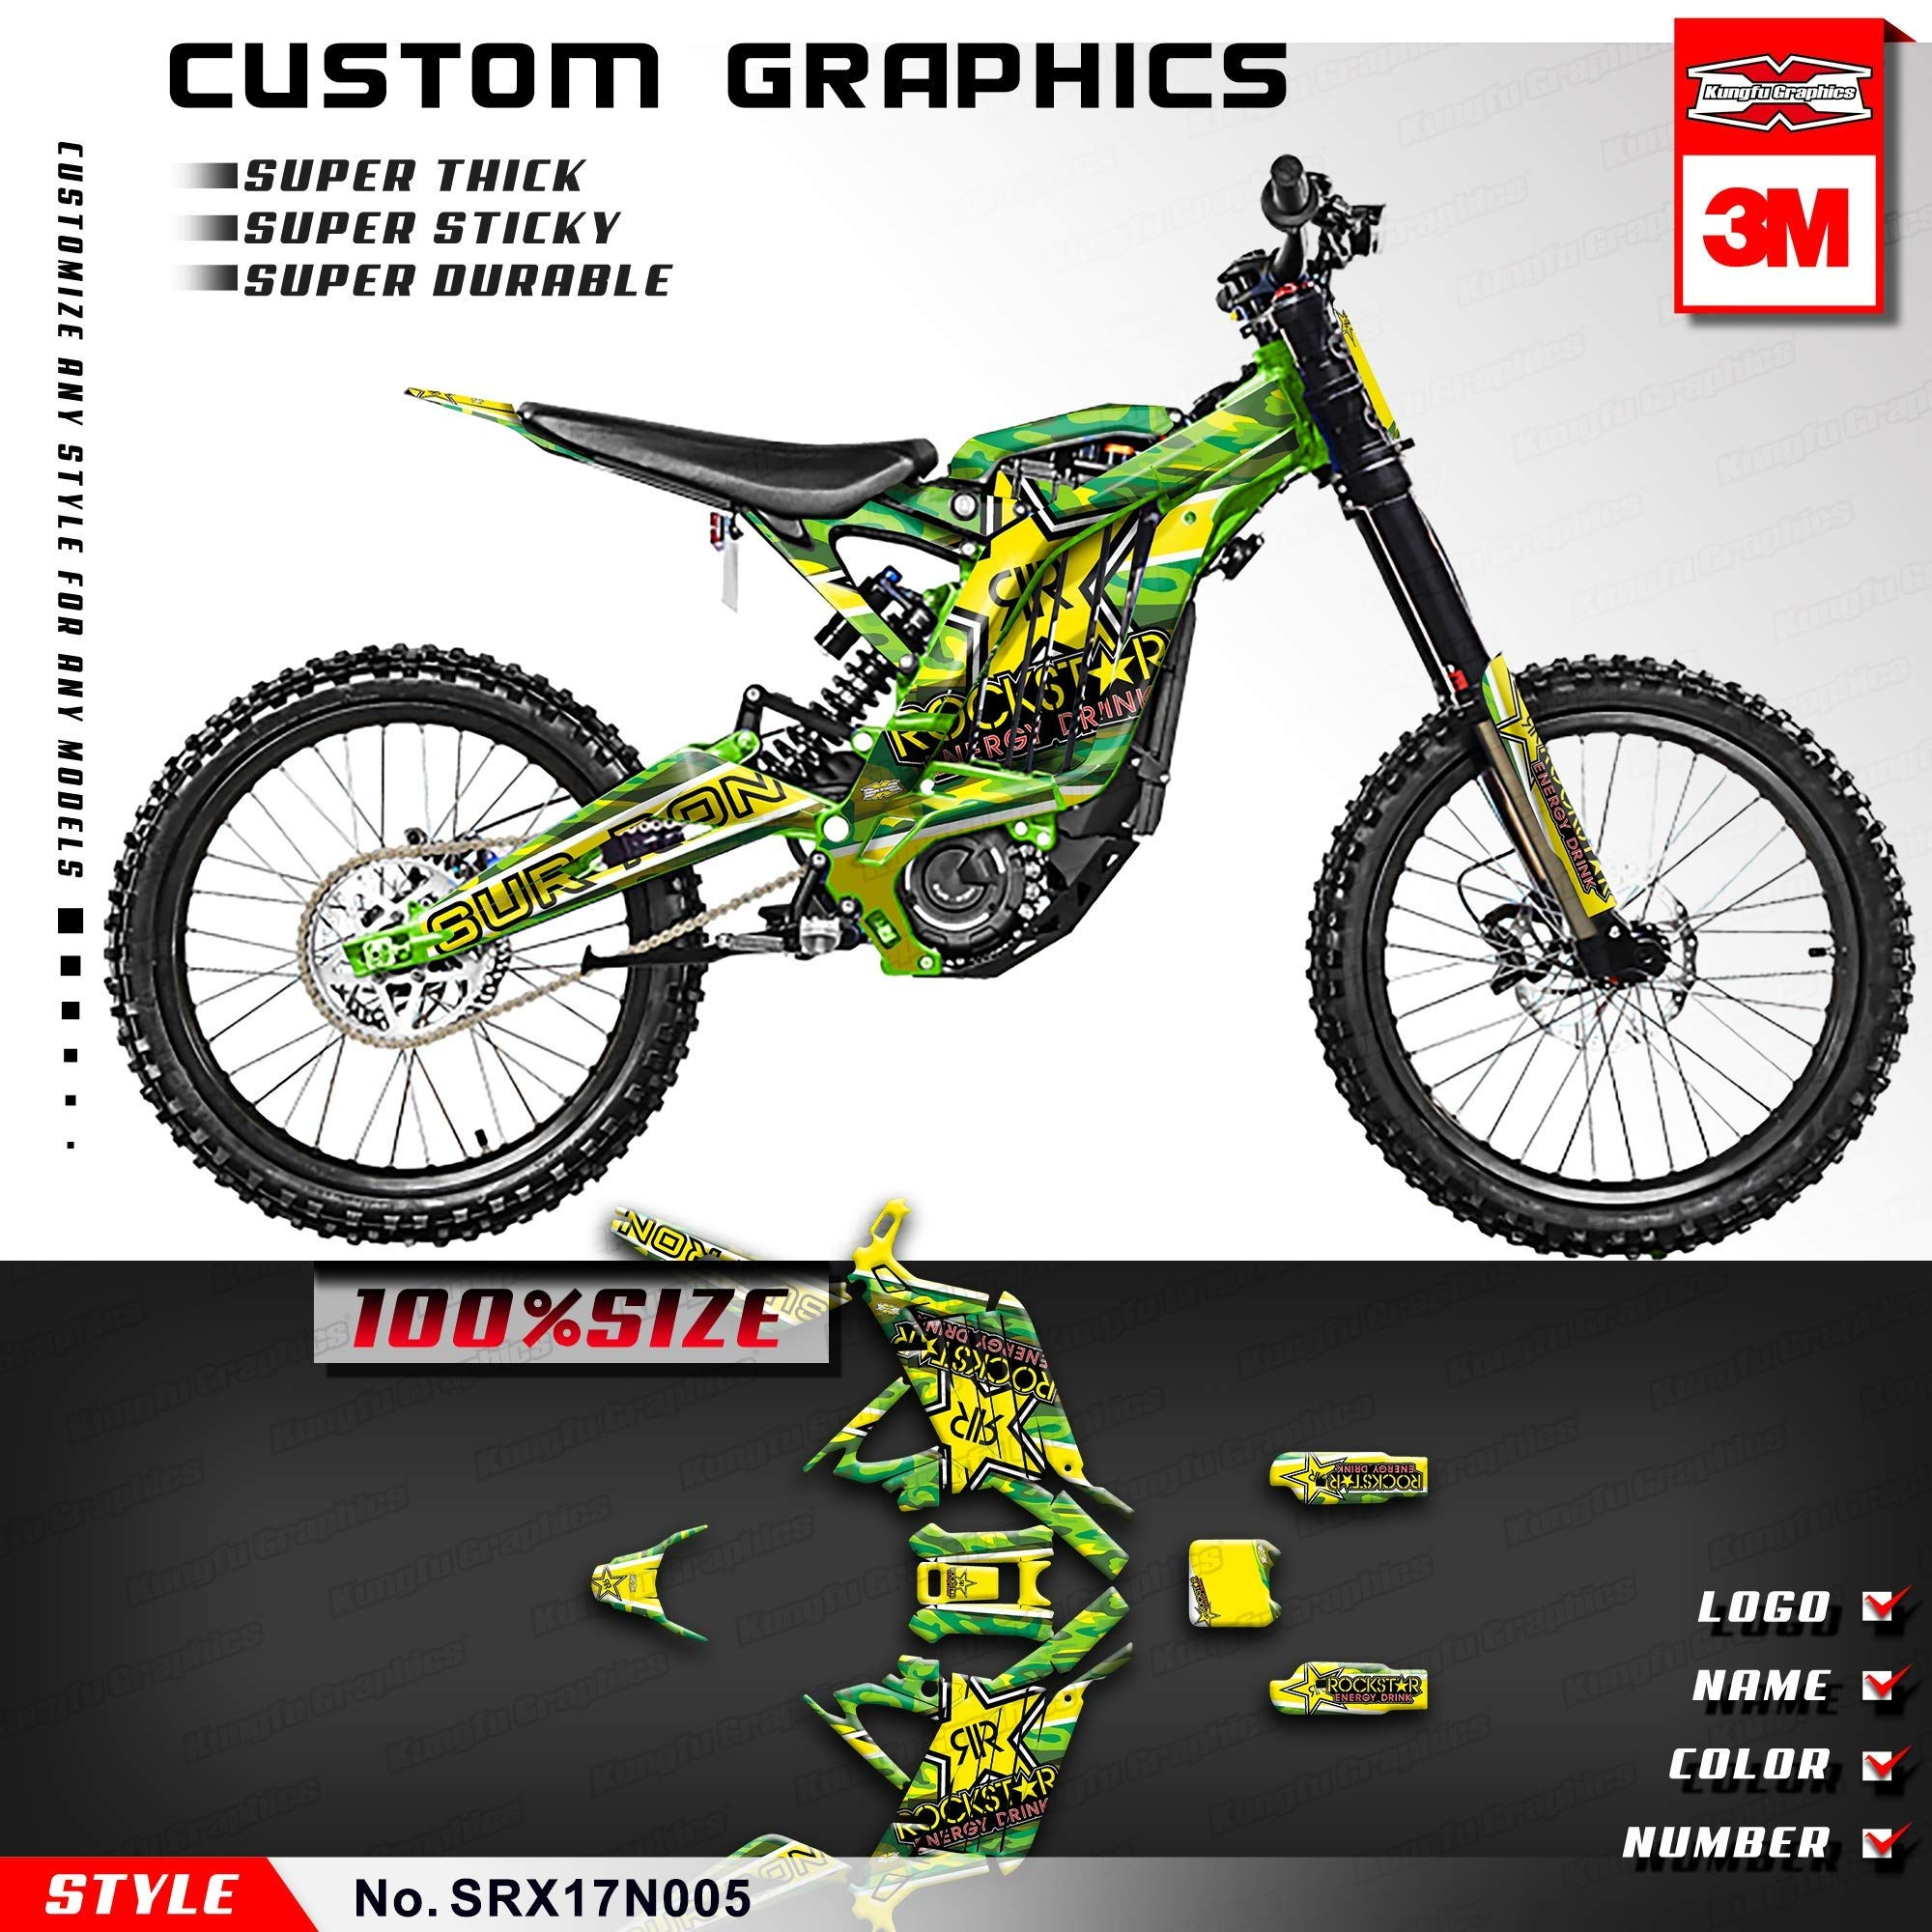 Kungfu Graphics Custom Decal Kit for Sur-Ron Light Bee X Electric Off-road Motorcycle Dirt Bike, Green Yellow, SRX17N005